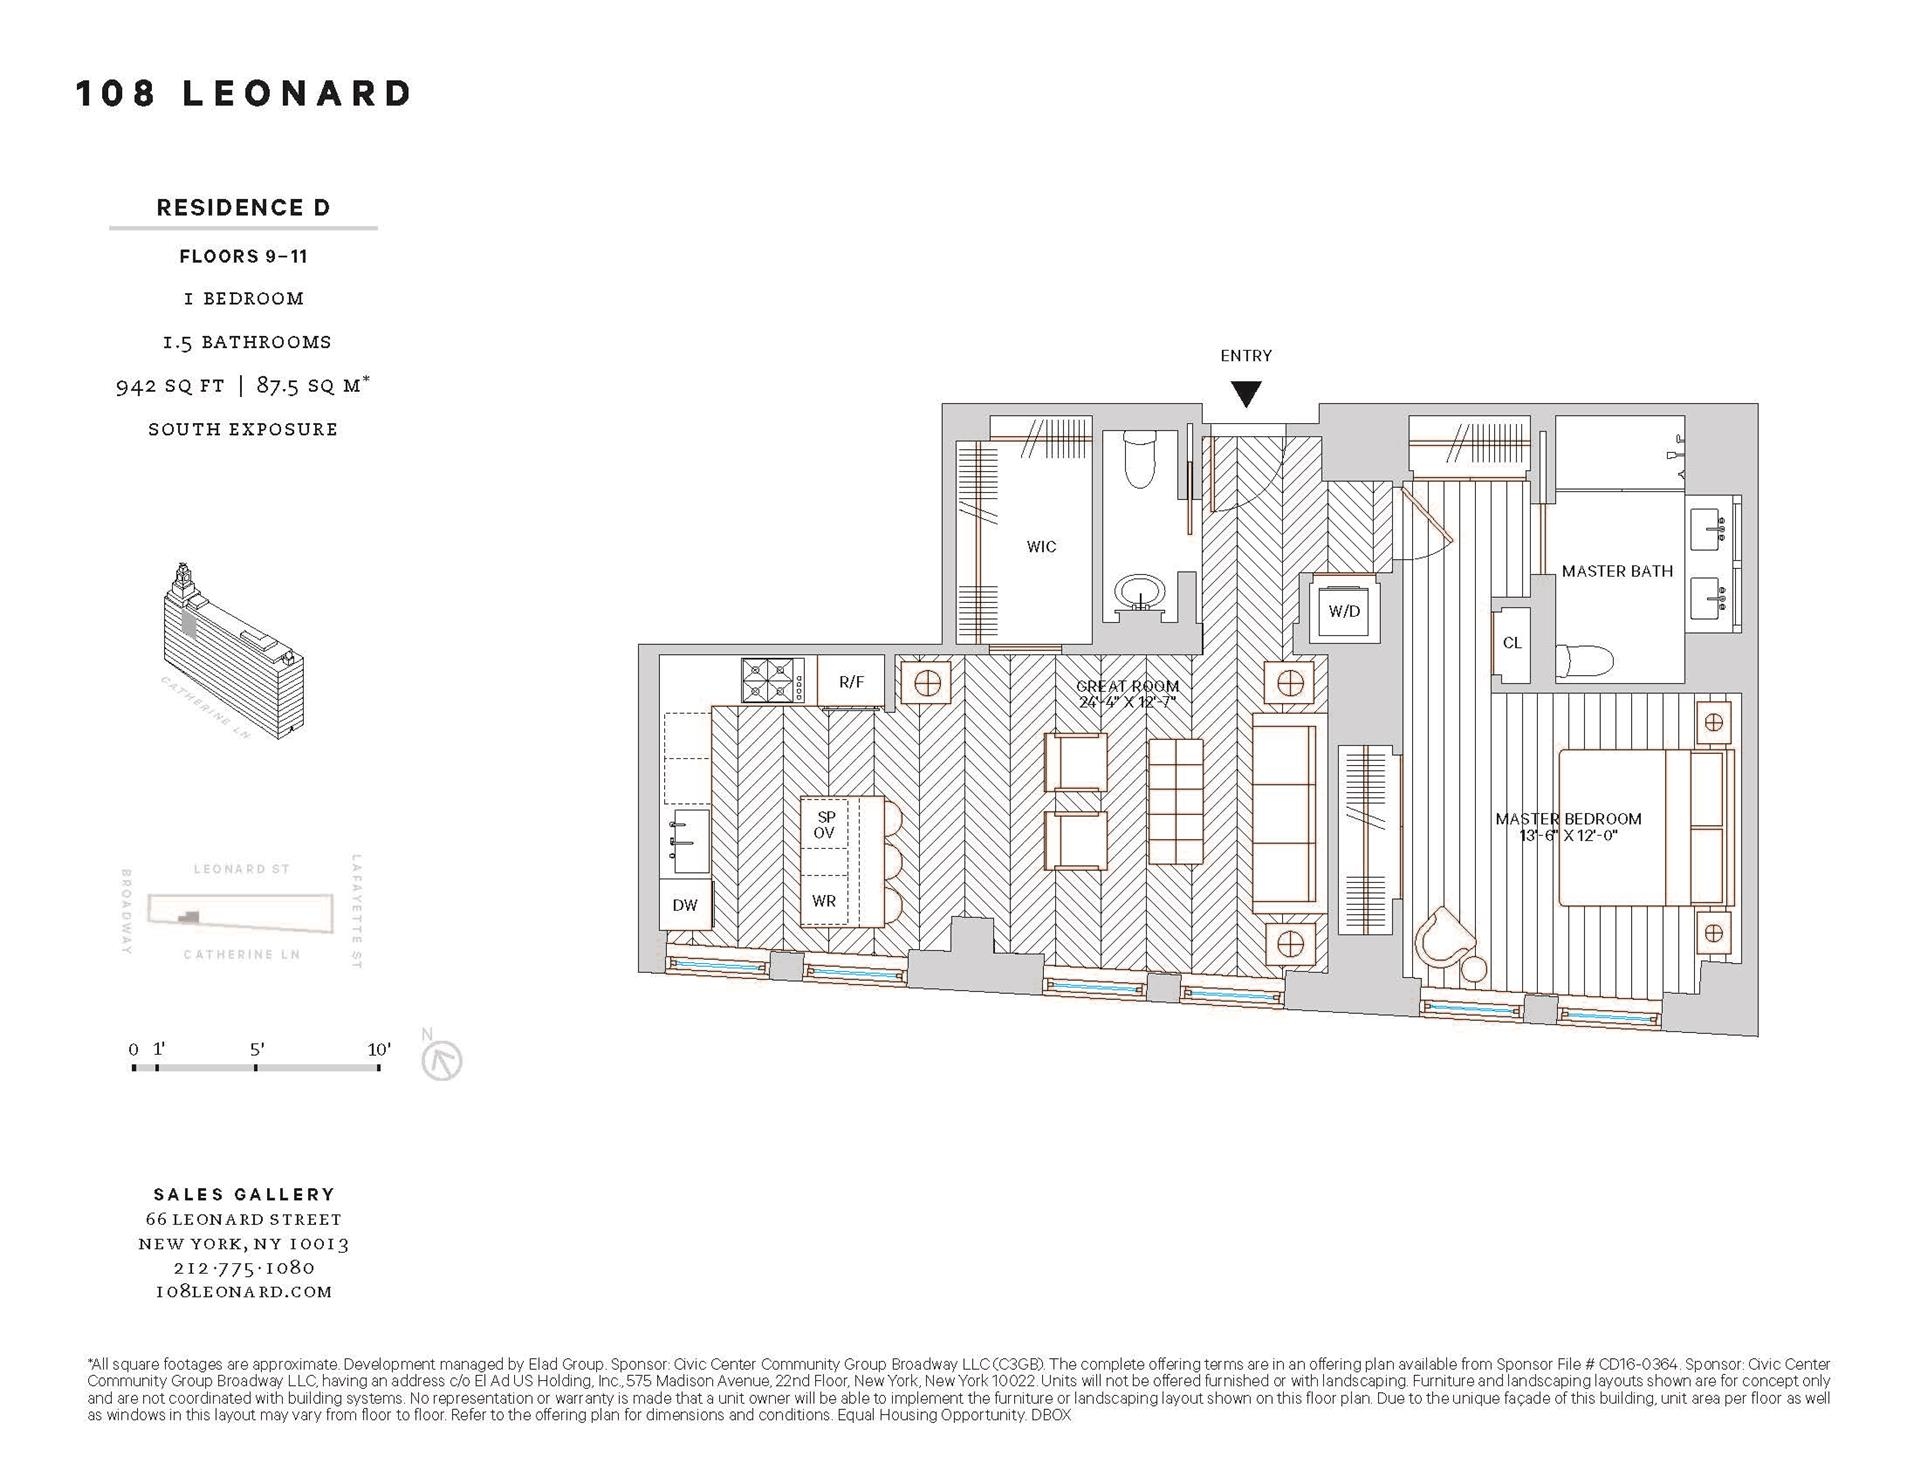 Floor plan of 108 Leonard St, 10D - TriBeCa, New York